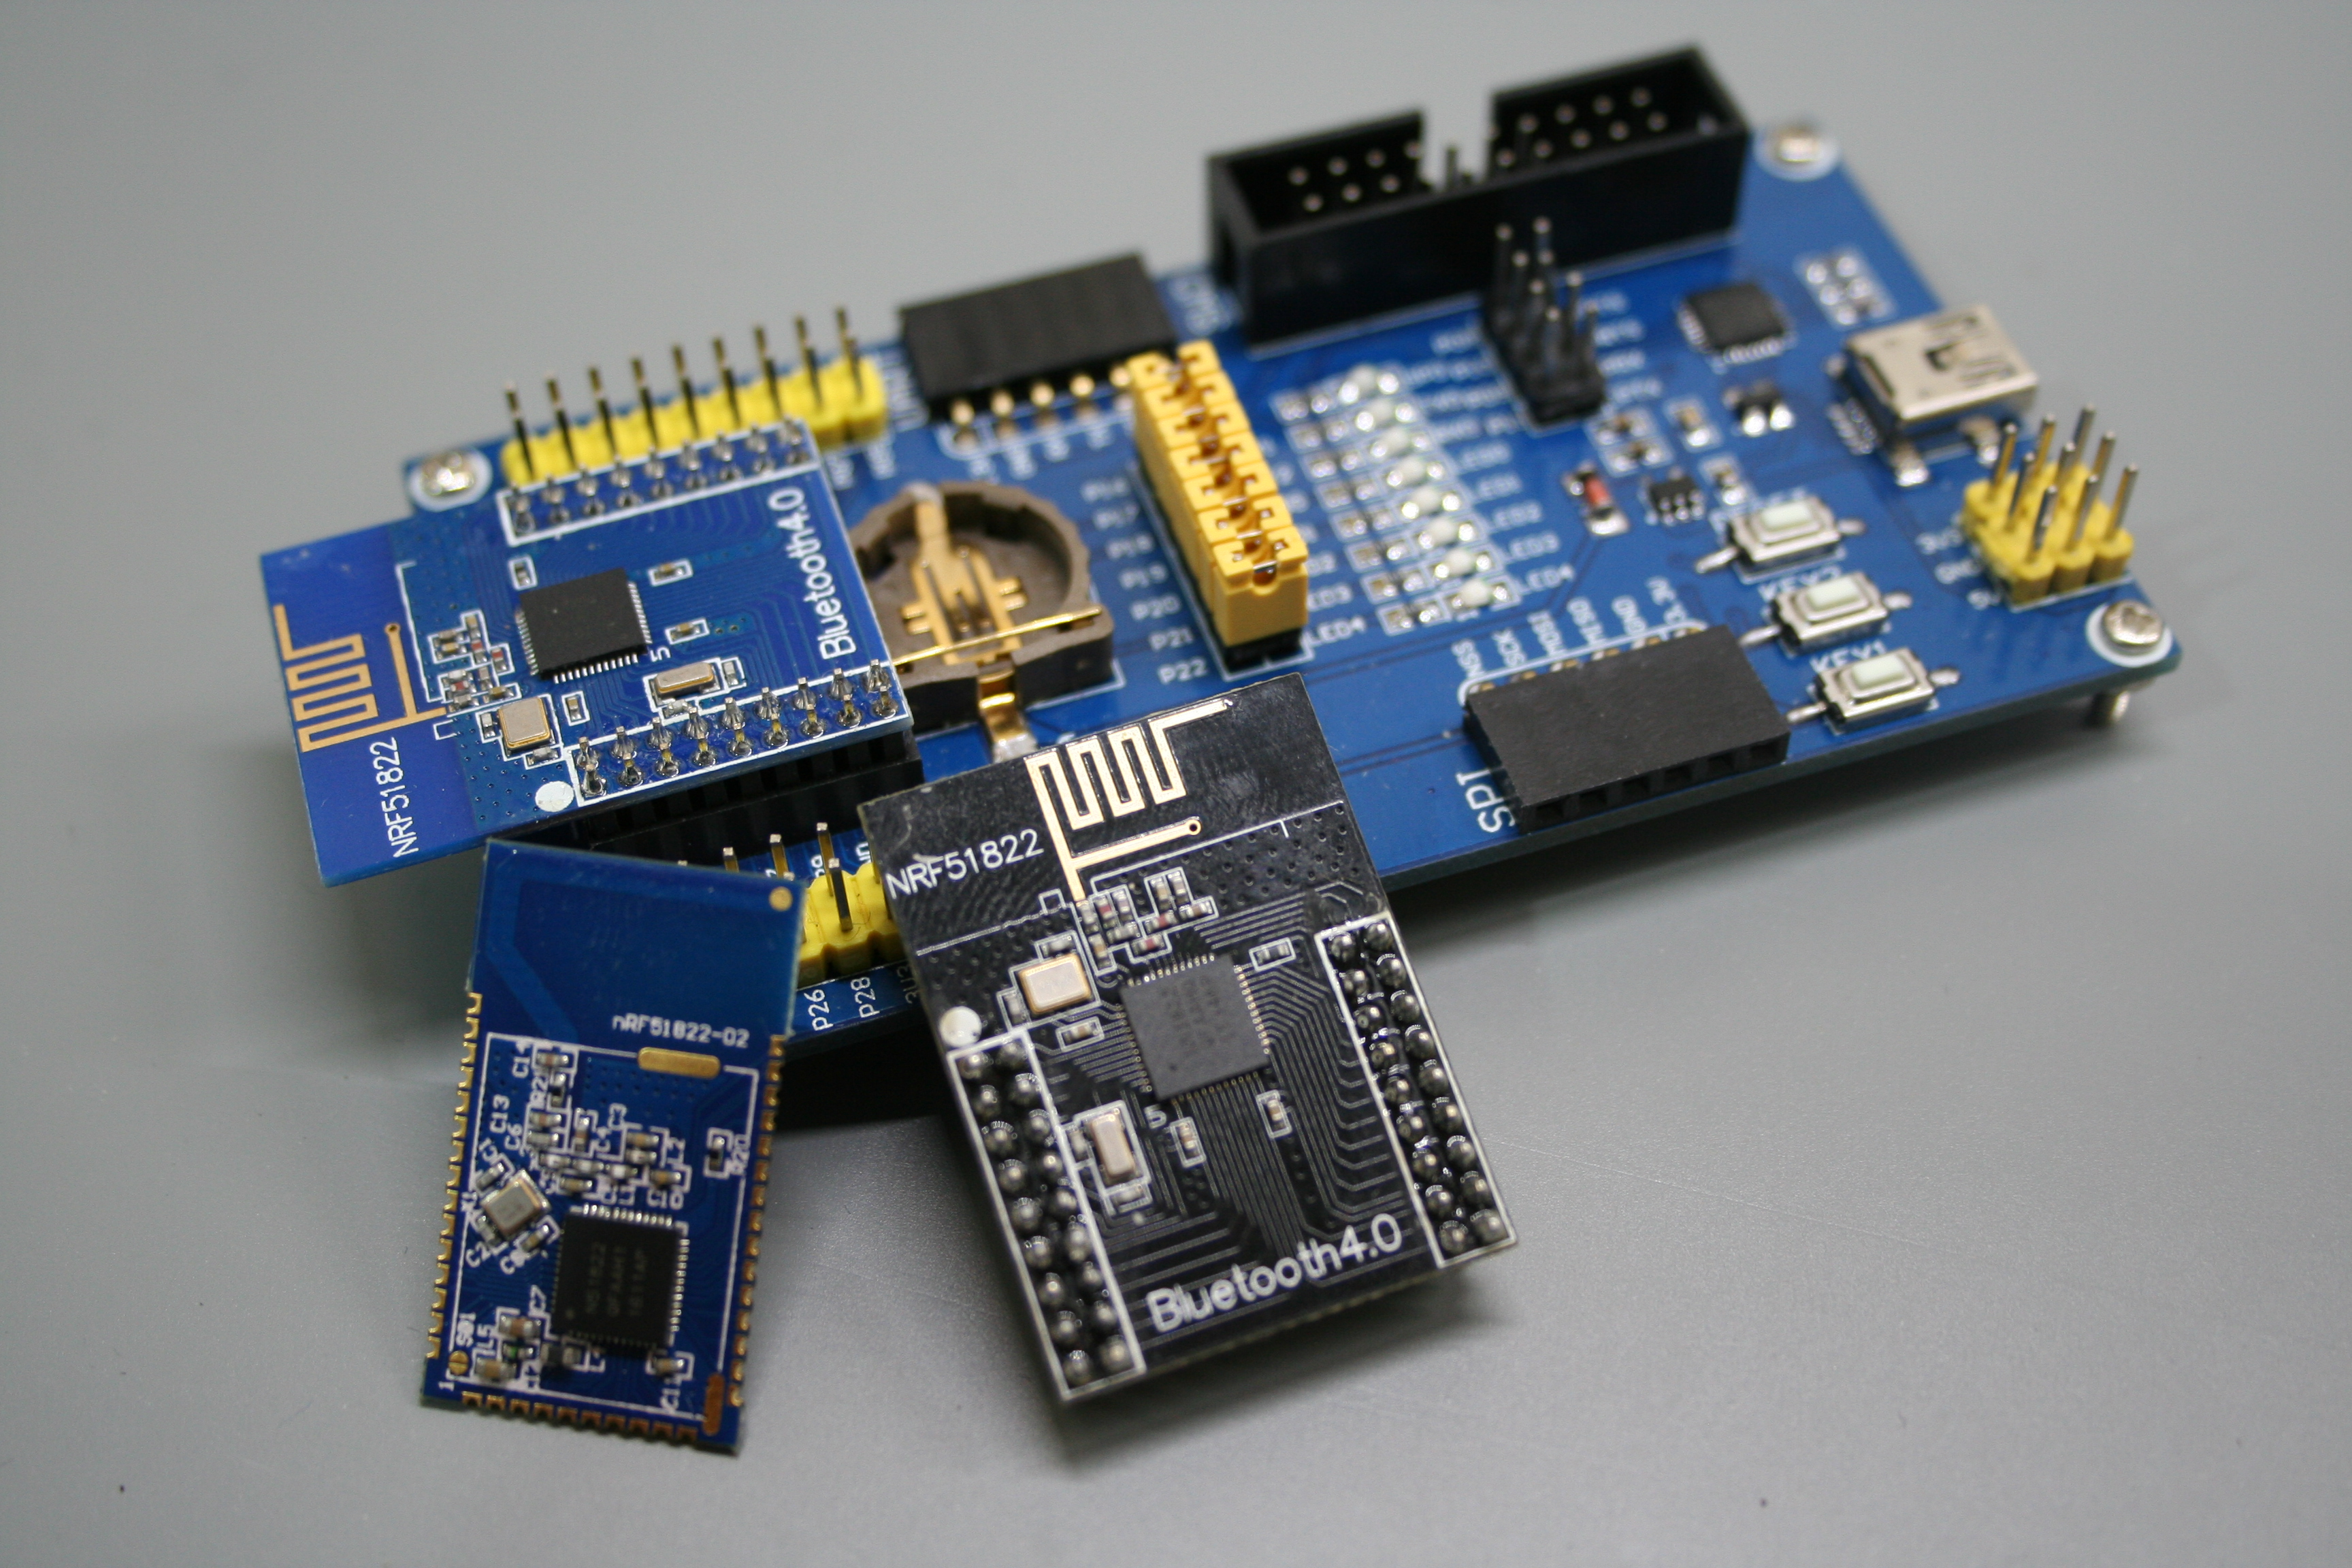 Bluetooth Low Energy nRF51